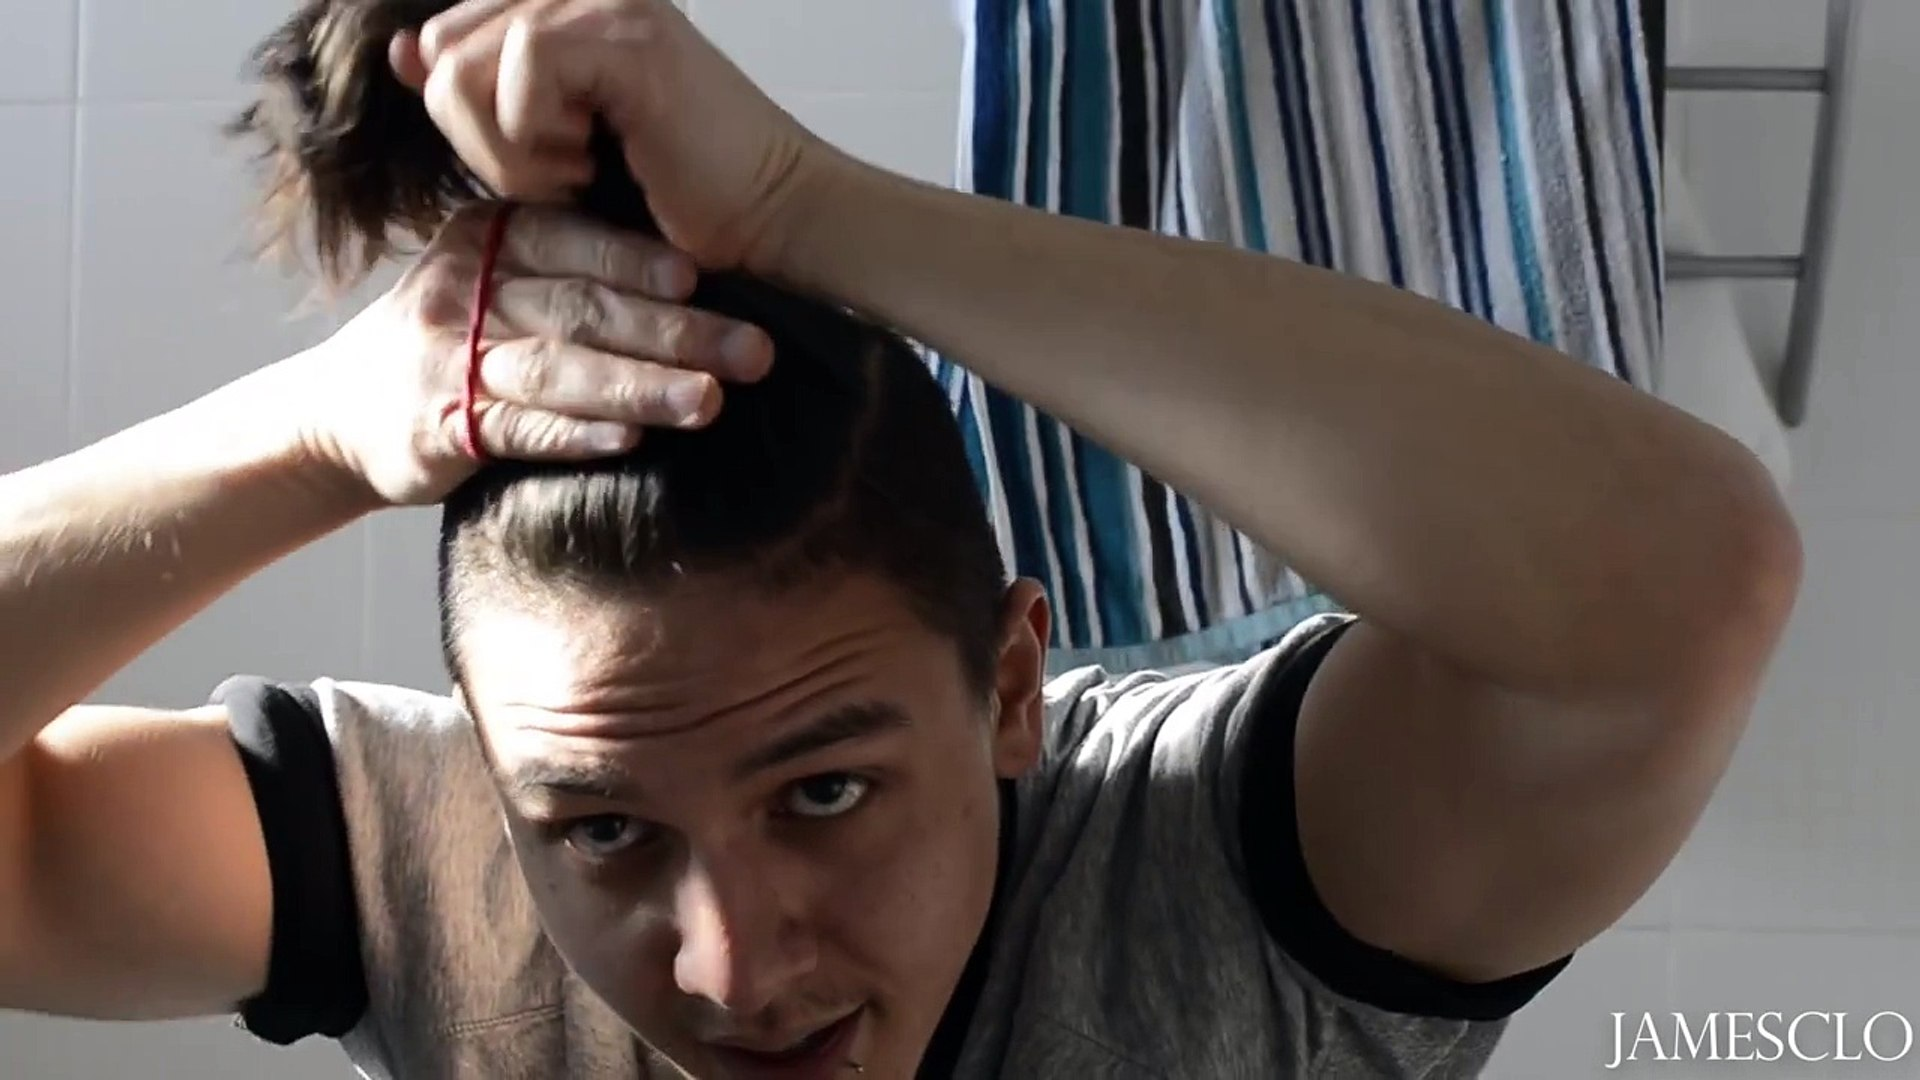 How I Cut & Style My Hair |TOP KNOT, MAN BUN, KET CUT TUTORIAL/HOW TO|